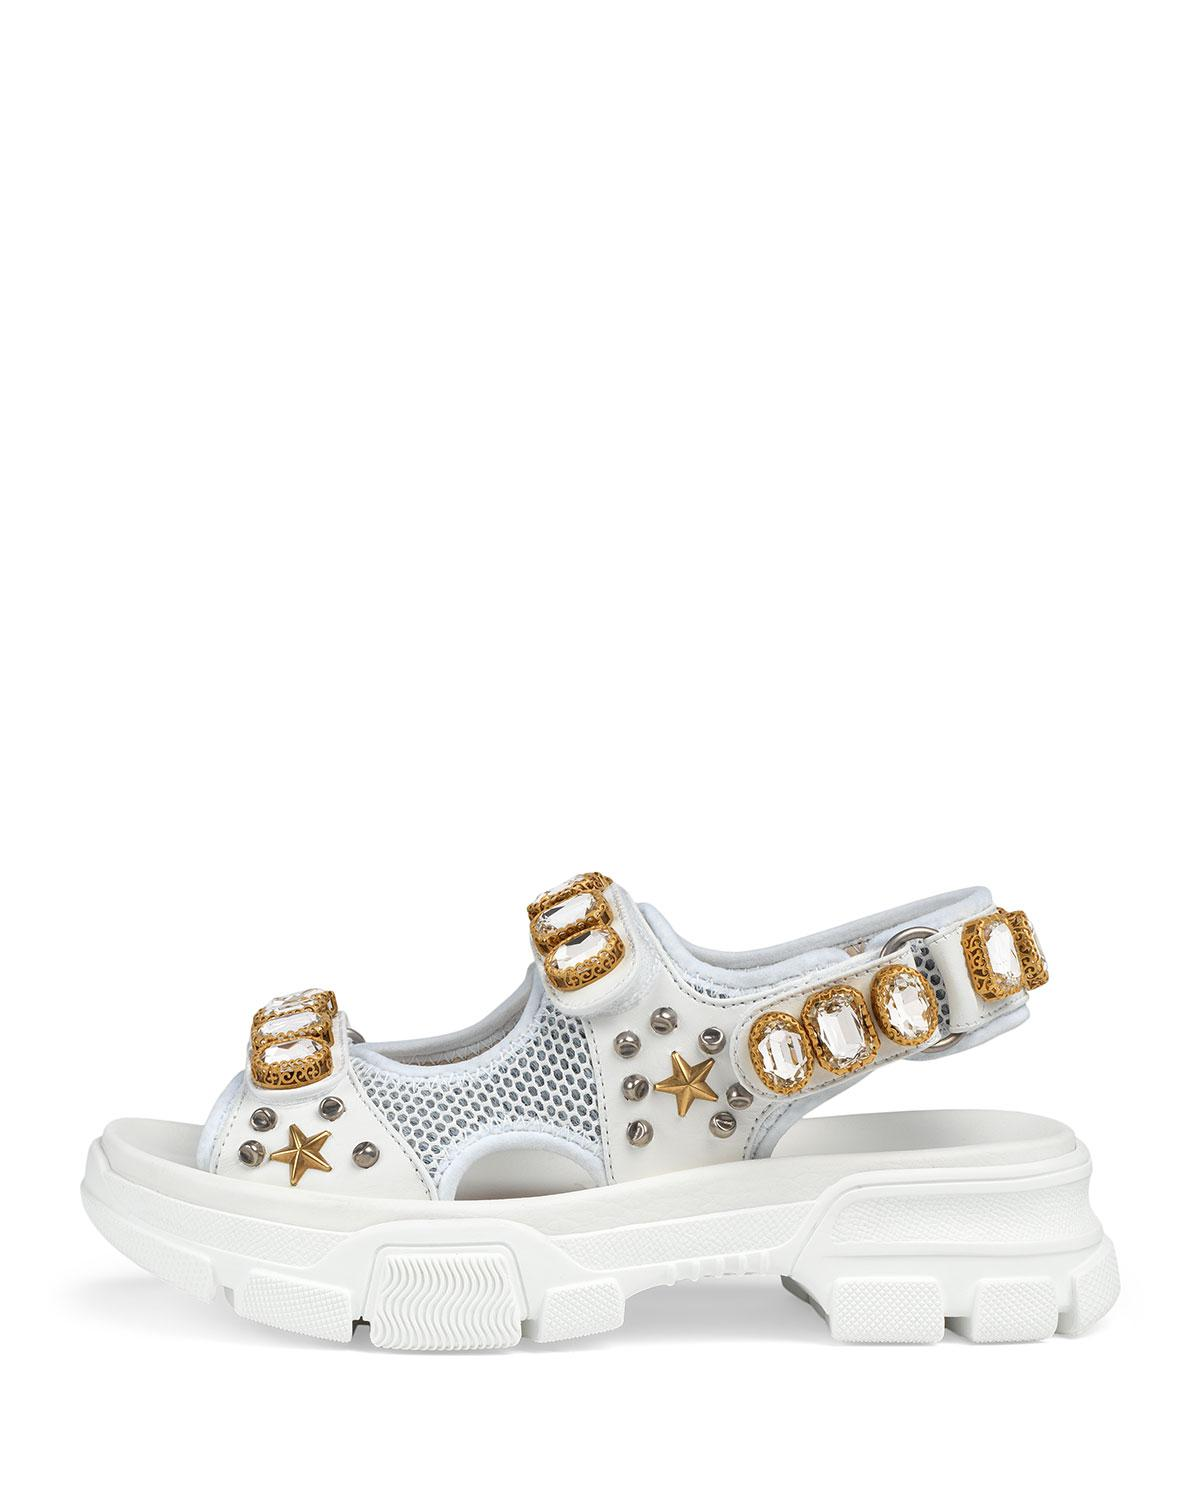 a02da815a32 Lyst - Gucci Metallic And Mesh Embellished Sandals W  Crystals in ...